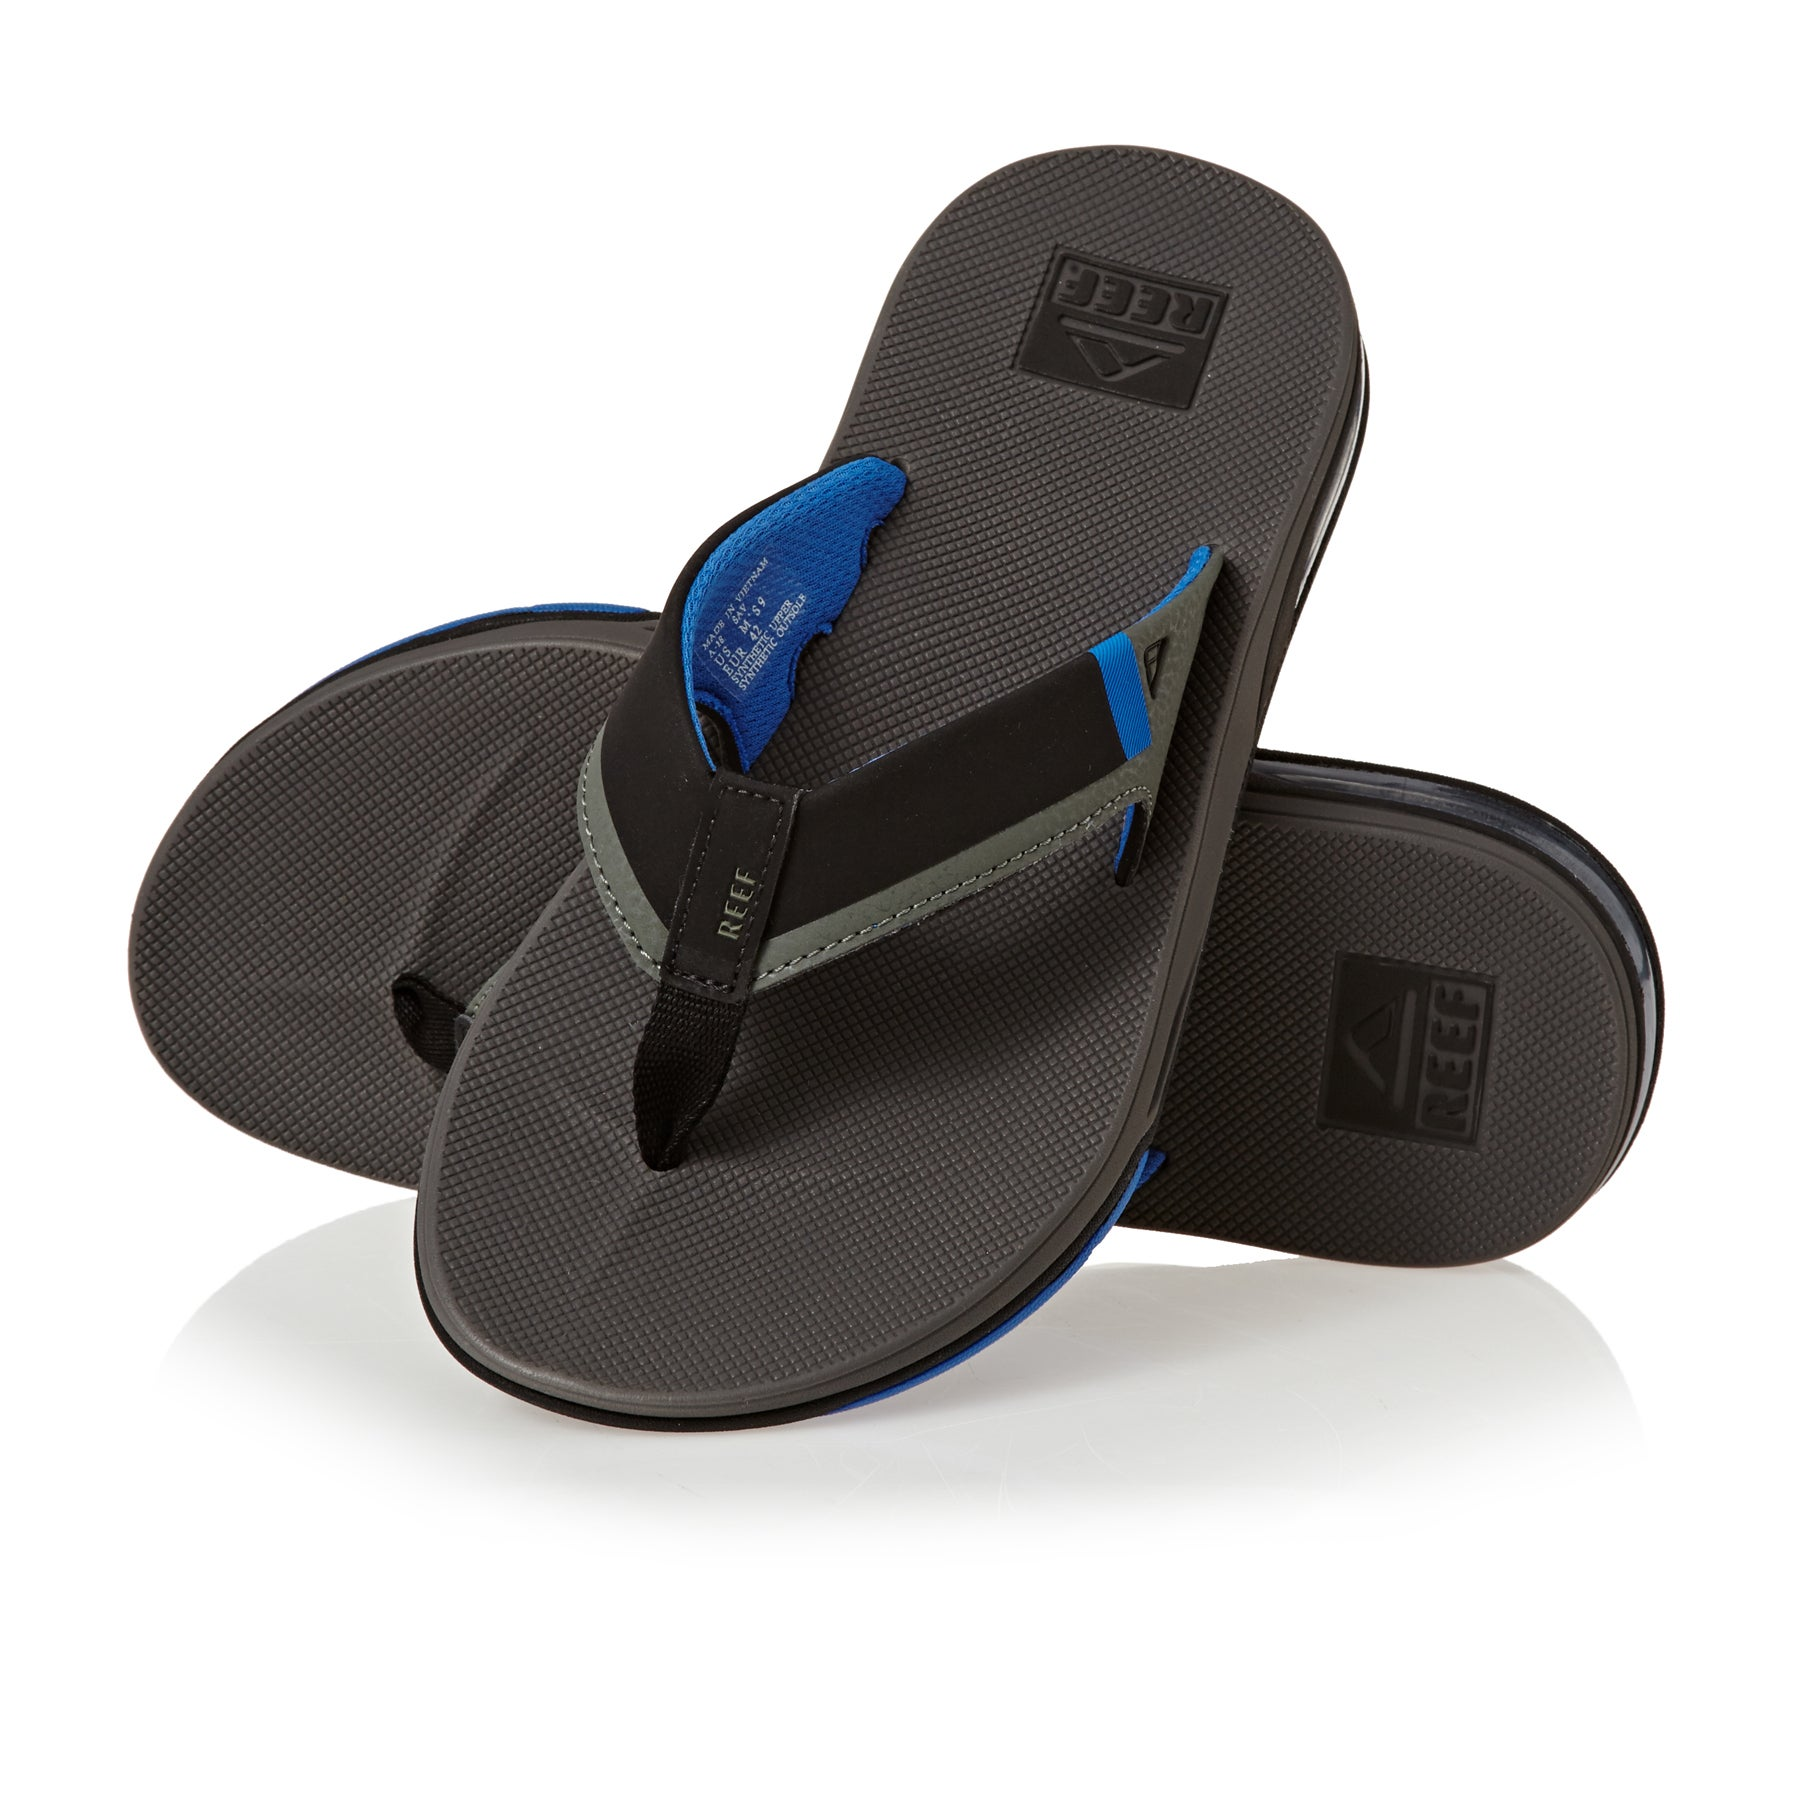 9ffc5c1effb5 Reef Fanning Low Sandals available from Surfdome